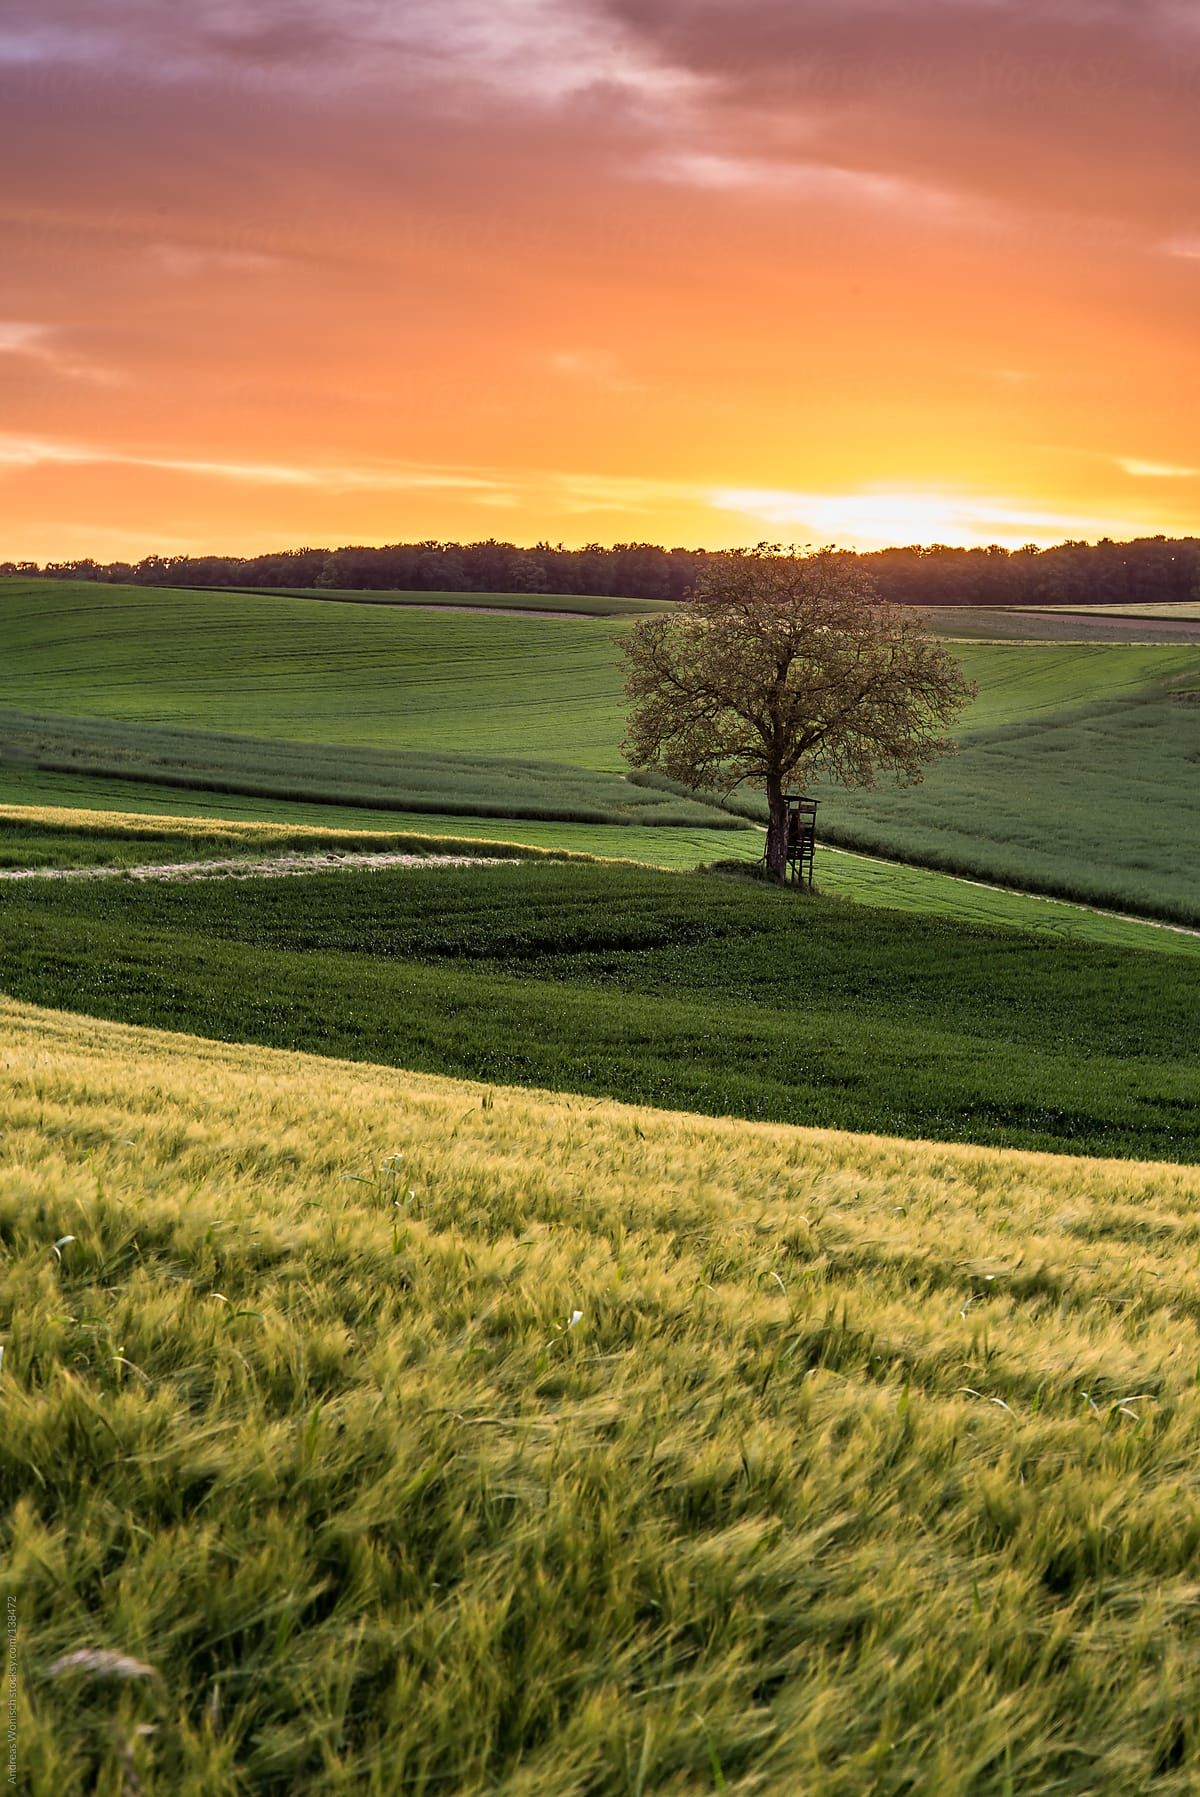 Tree With High Seat In Fields At Sunset Download This High Resolution Stock Photo Landscape Photography Nature Beautiful Landscape Wallpaper Nature Photography